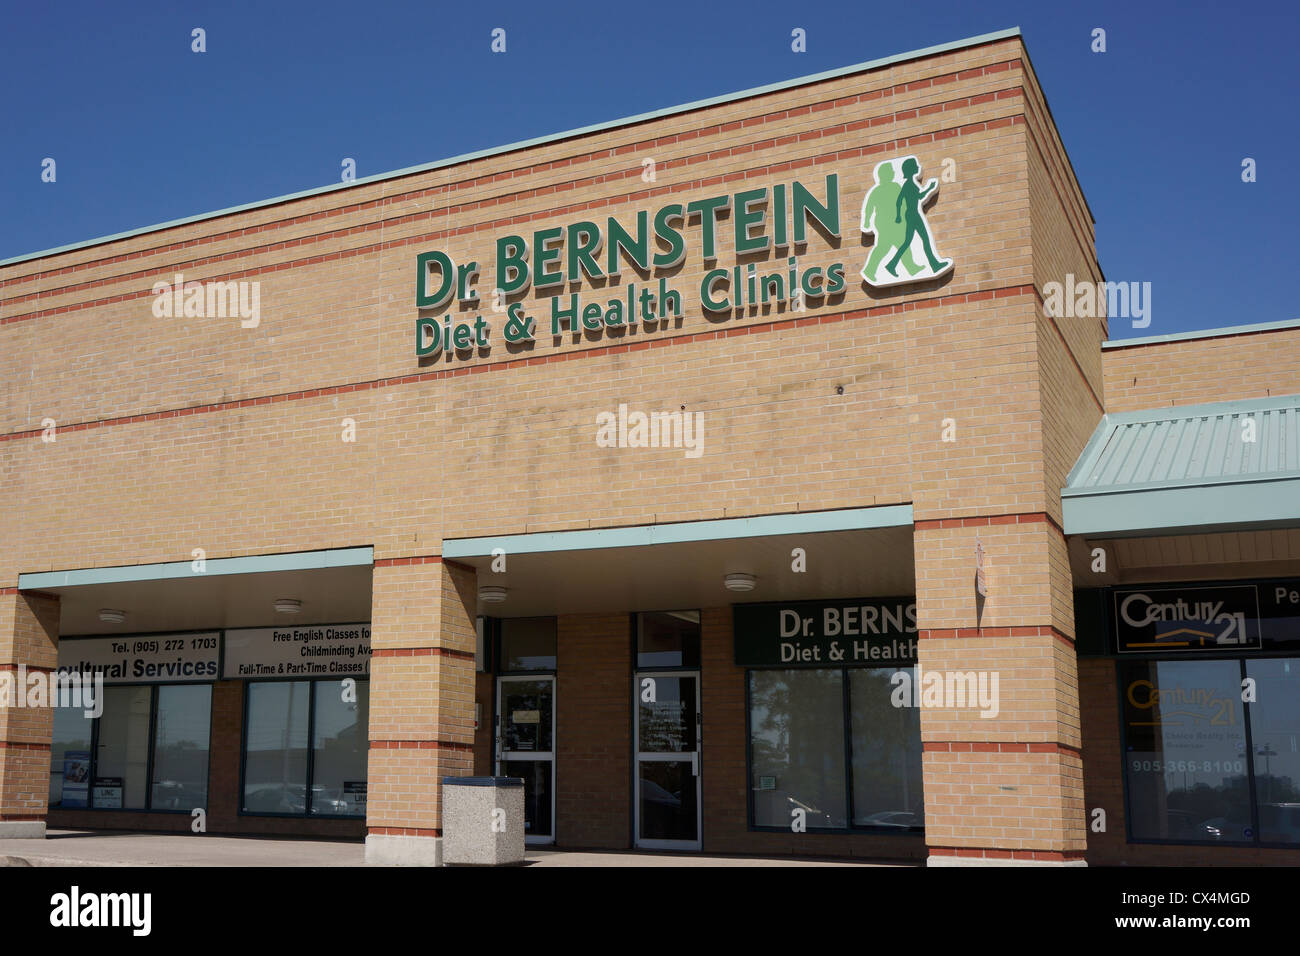 Dr. Bernstein Diet and Health Clinics, clinic in Mississauga, Ontario, Canada - Stock Image